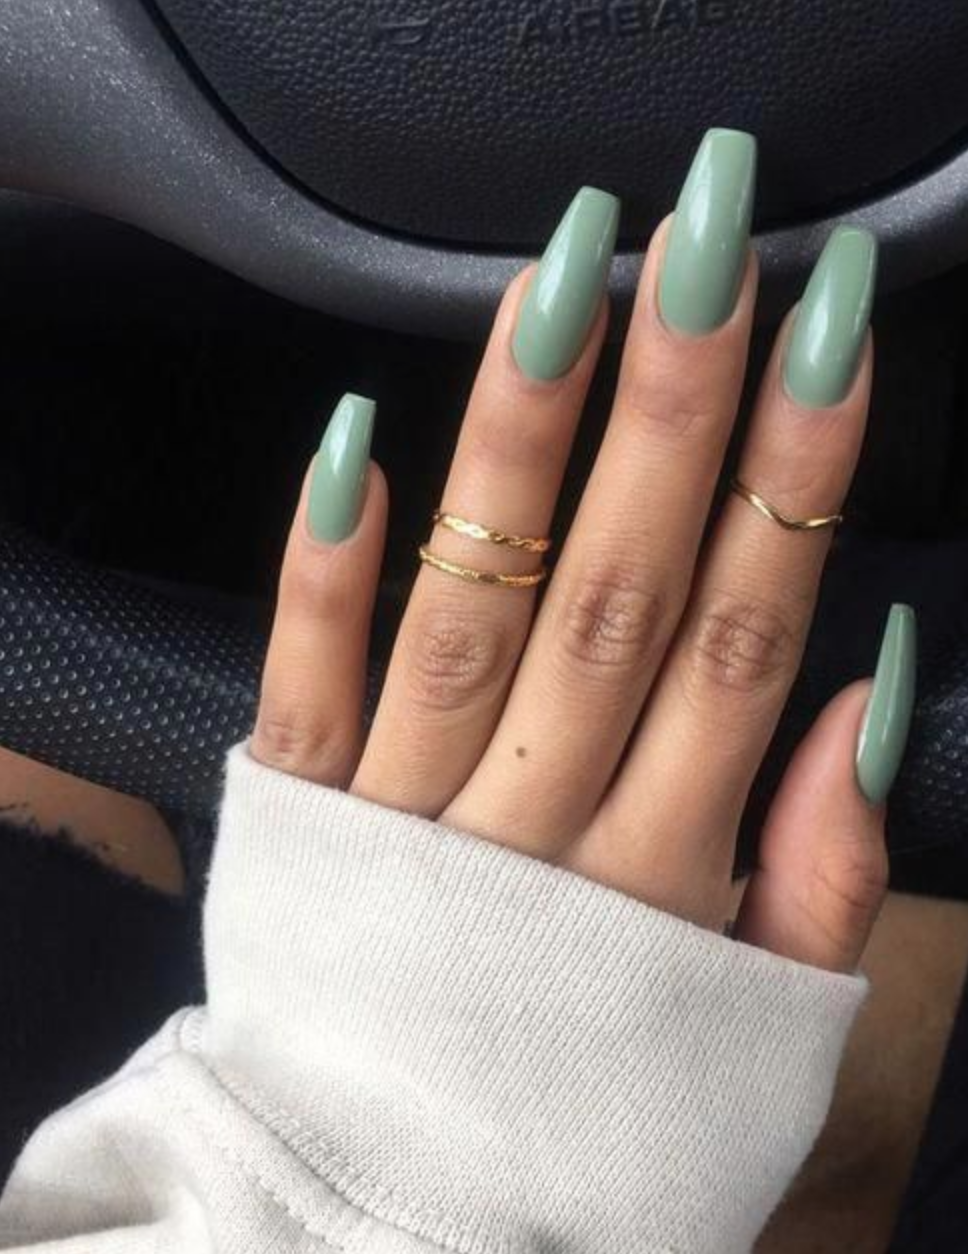 10 Popular Spring Nail Colors For 2020 An Unblurred Lady In 2020 Green Nails Mint Green Nails Summer Acrylic Nails